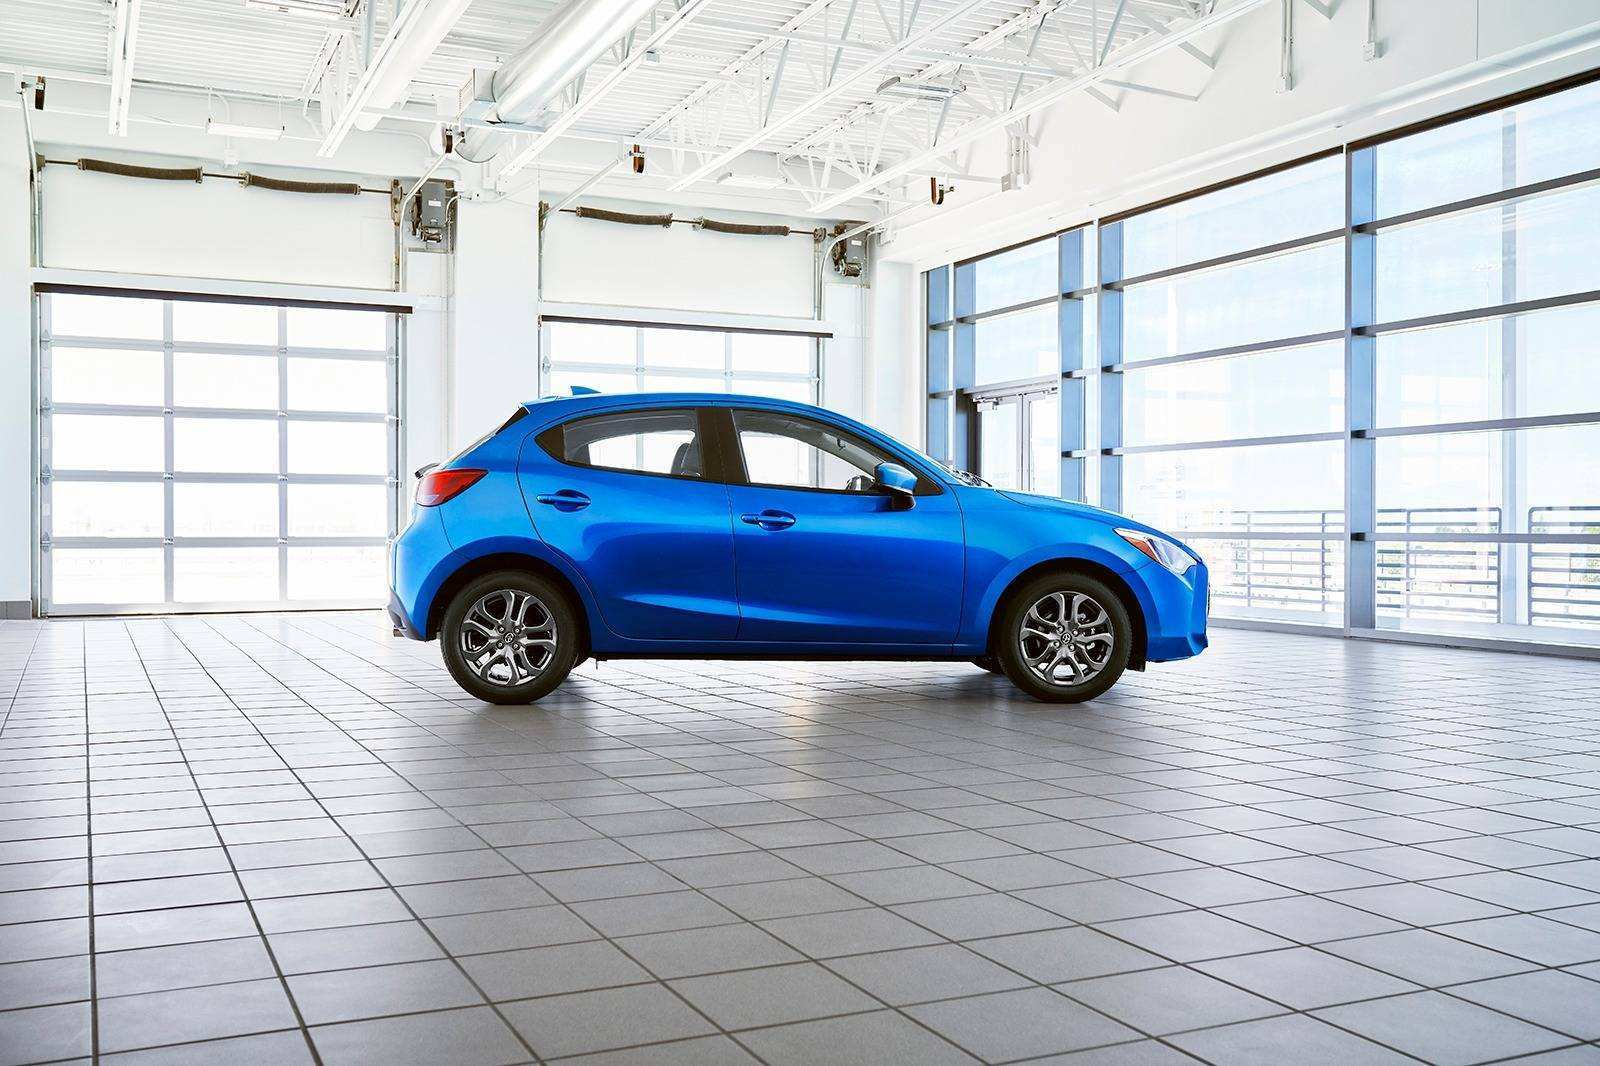 37 All New 2020 Toyota Yaris Hatchback Price And Release Date